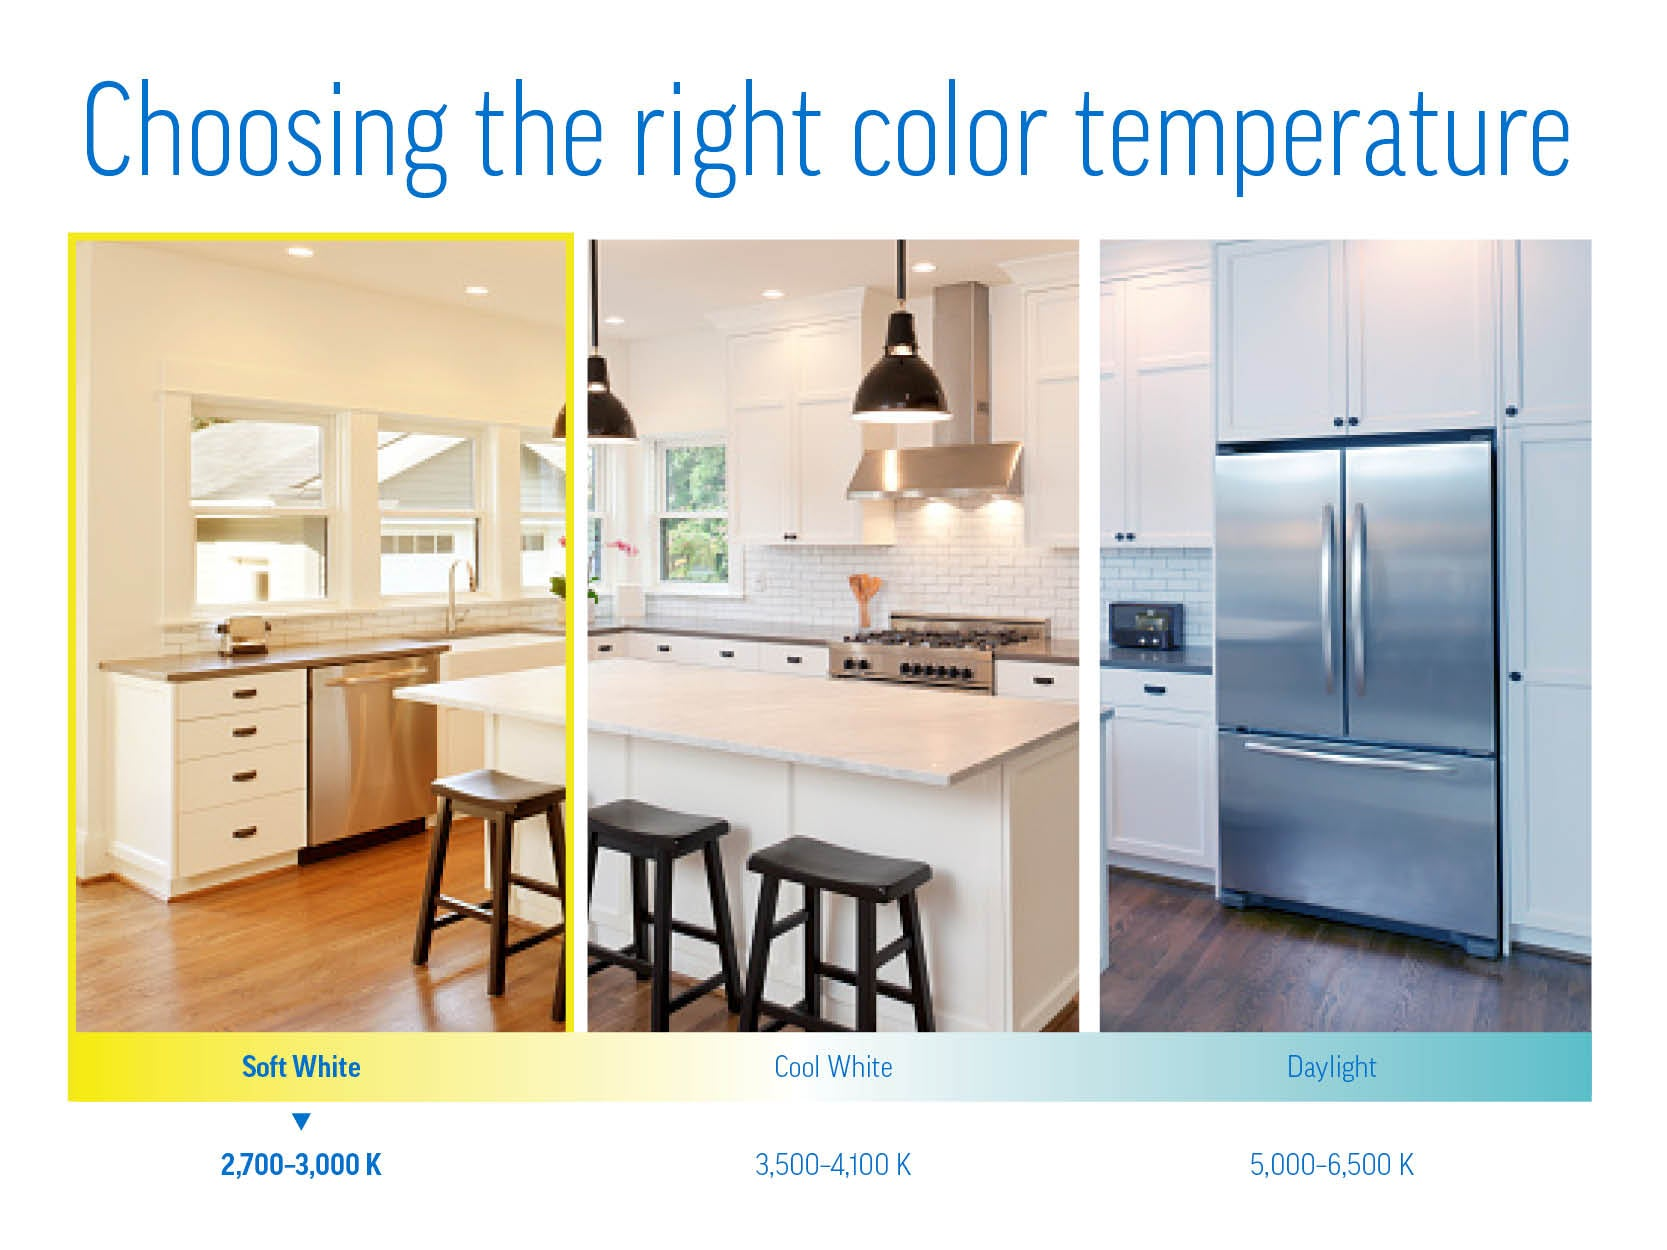 Samples of what different color temperatures look like in a kitchen.